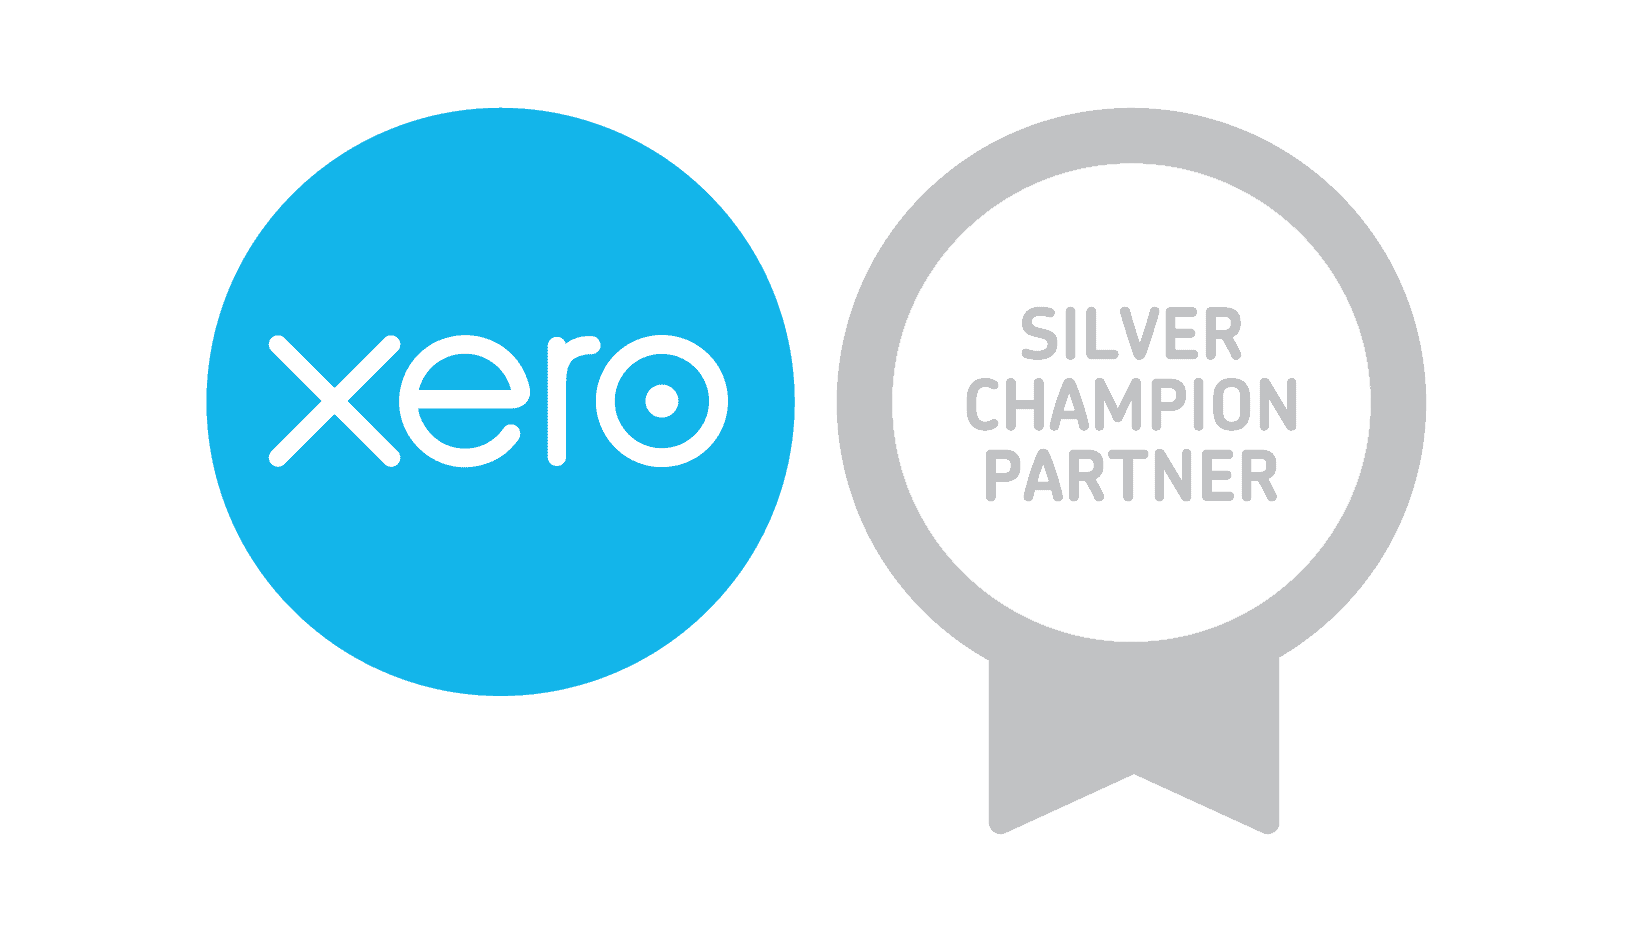 Xero Silver Champion Partner Badge